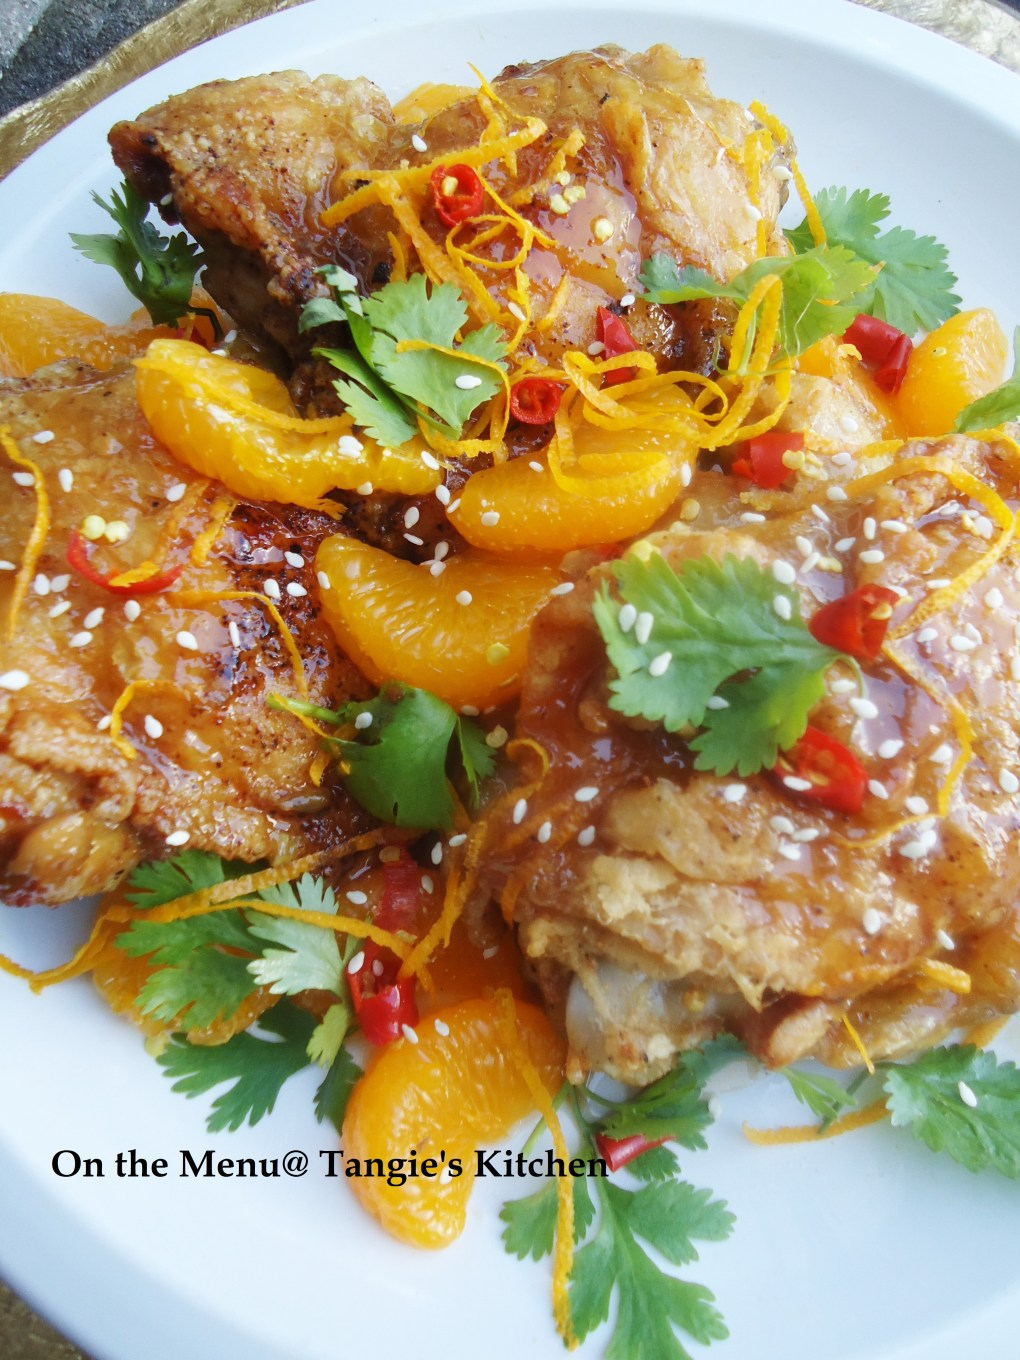 dsc06610-mandarin-orange-chicken-otmtk